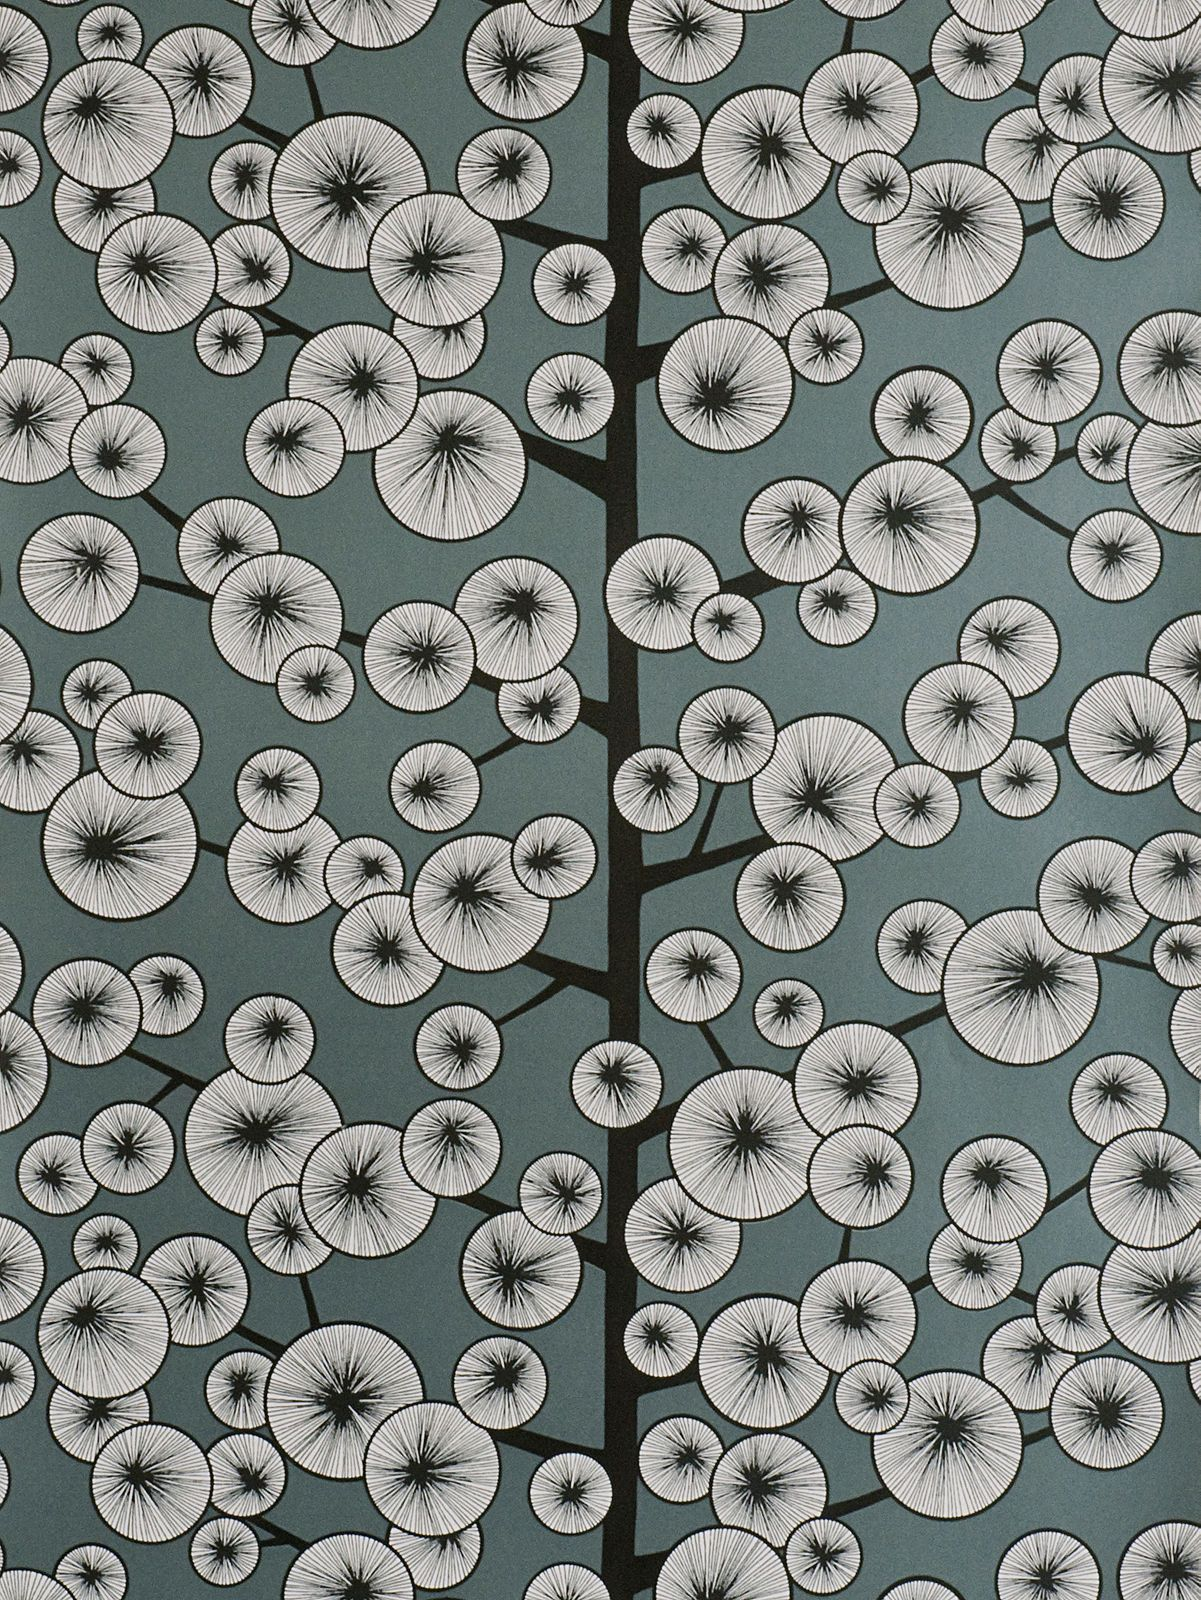 Buymissprint Cotton Tree Wallpaper, Grey, Misp1037 Online At Johnlewiscom